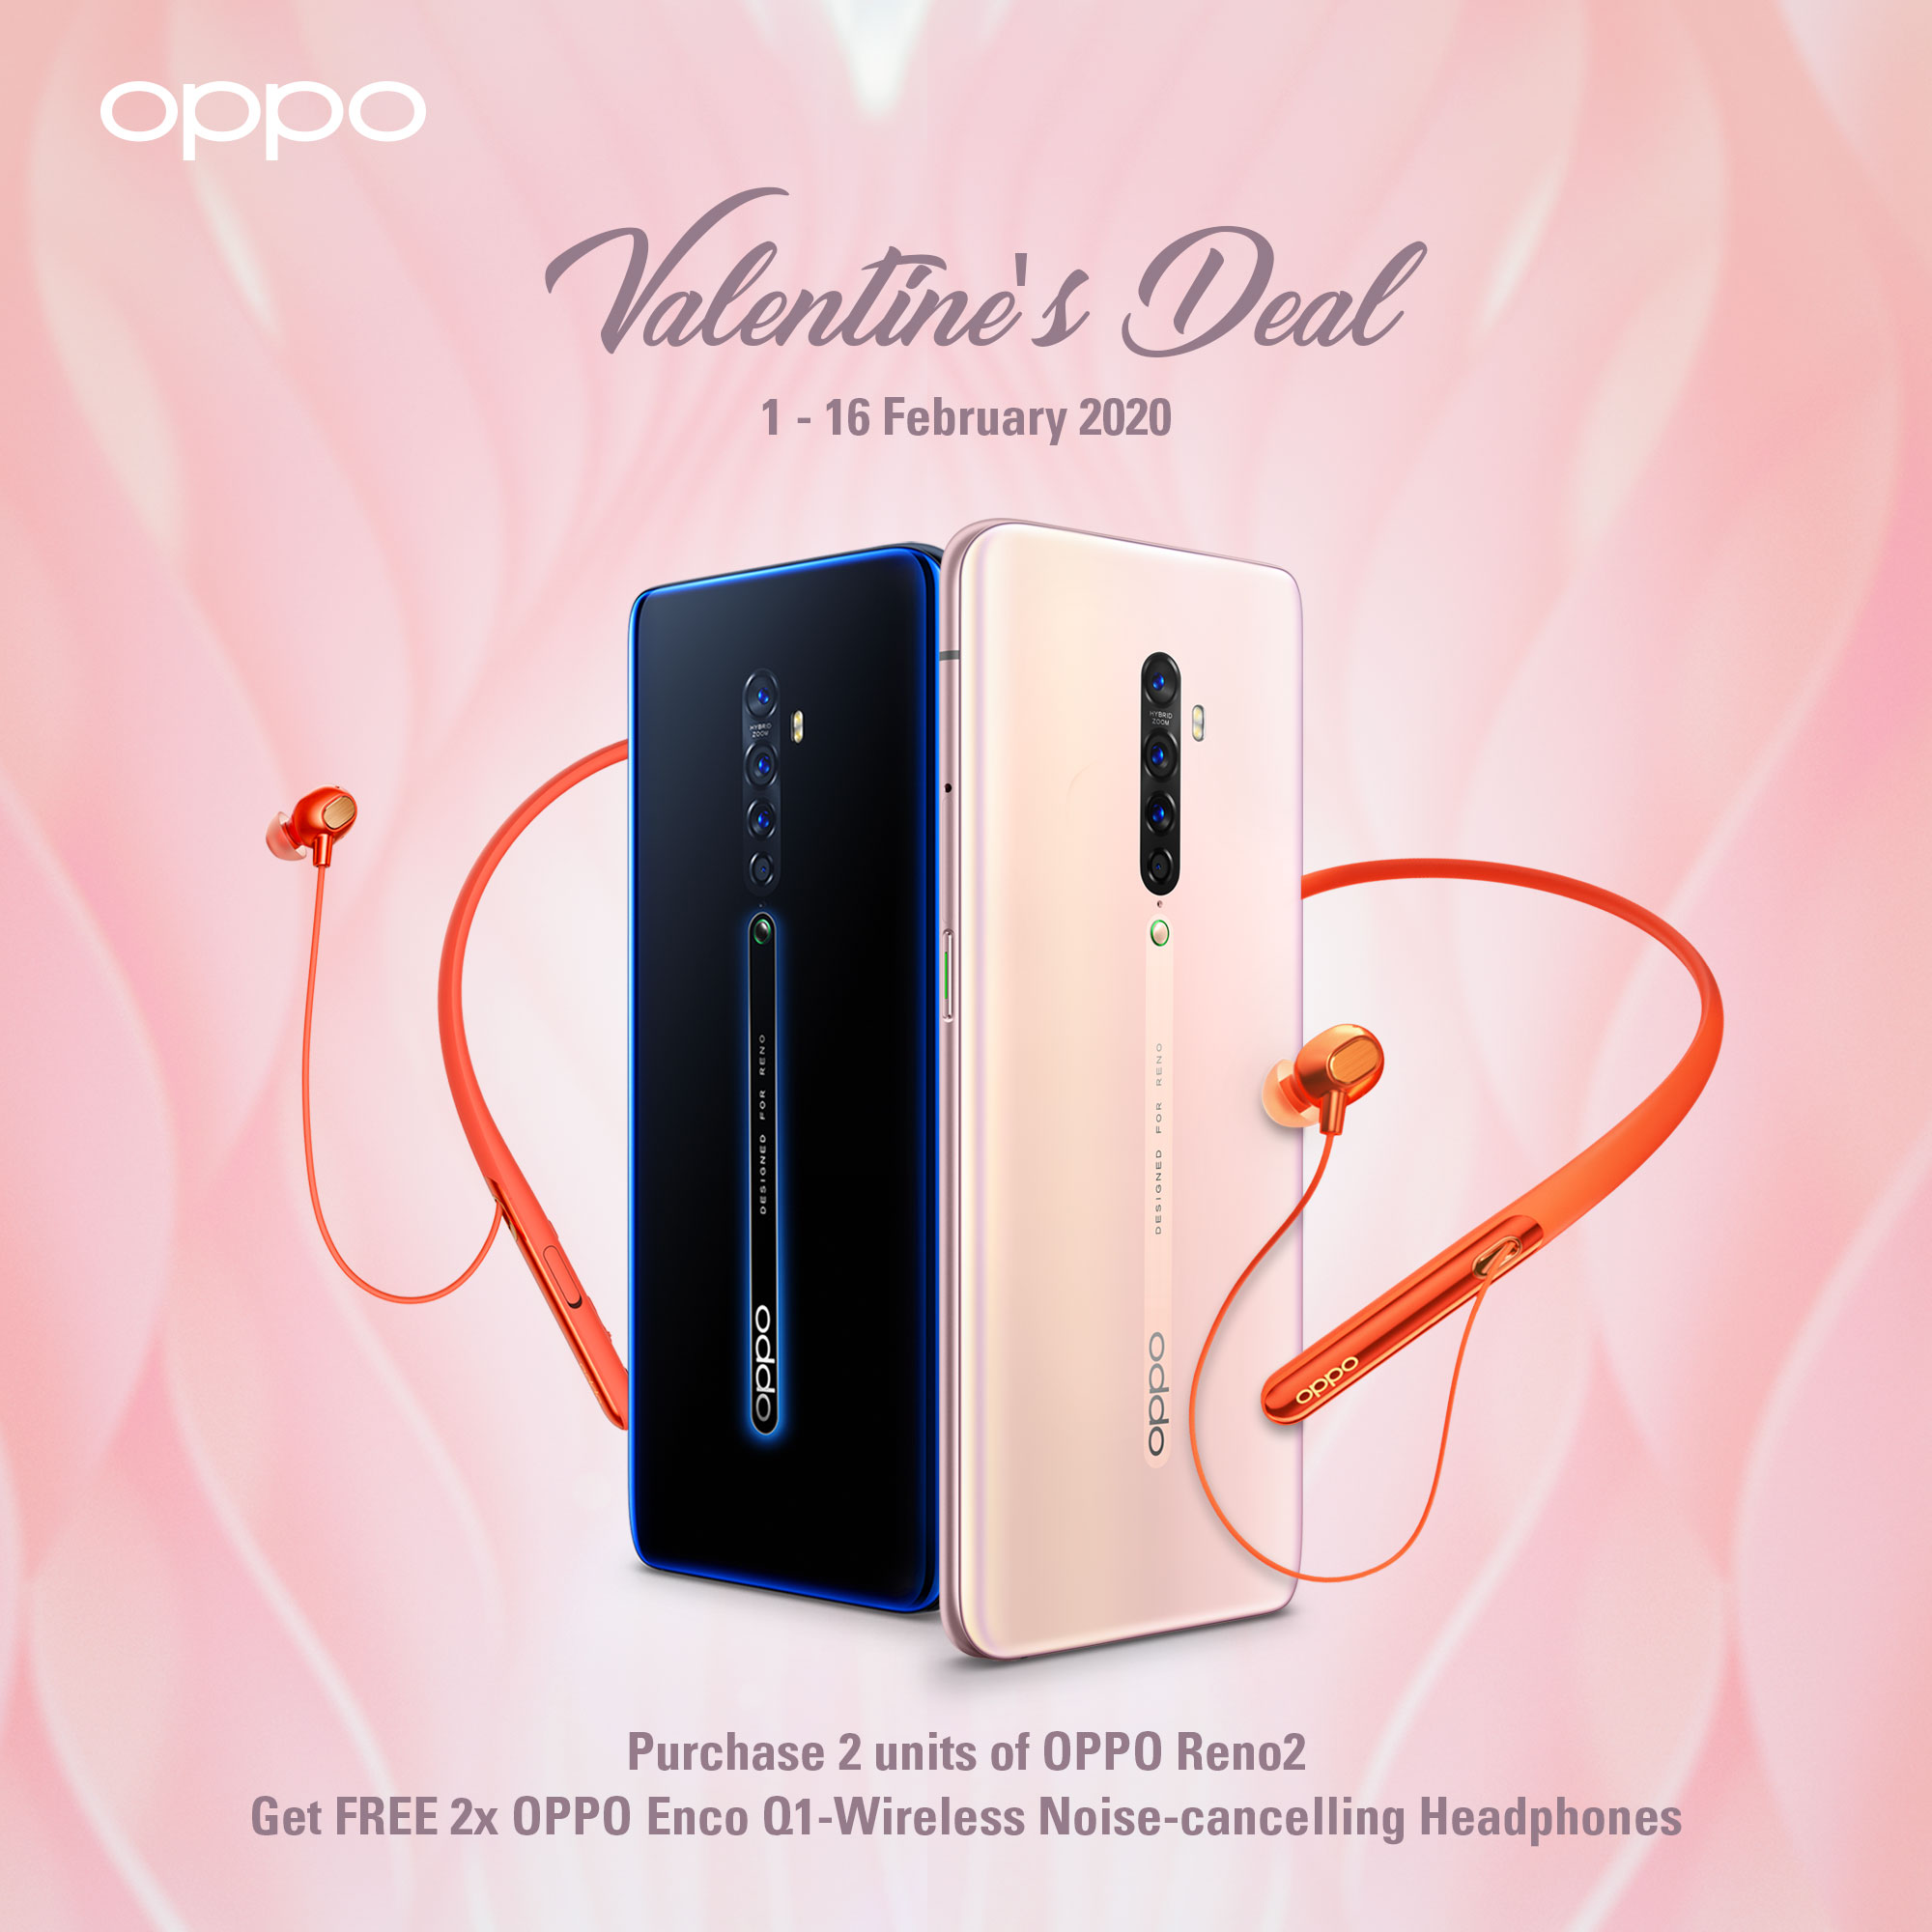 Valentine's Day deal: Buy two OPPO Reno2 phones, get two OPPO ENCO Q1 headphones for free! 1